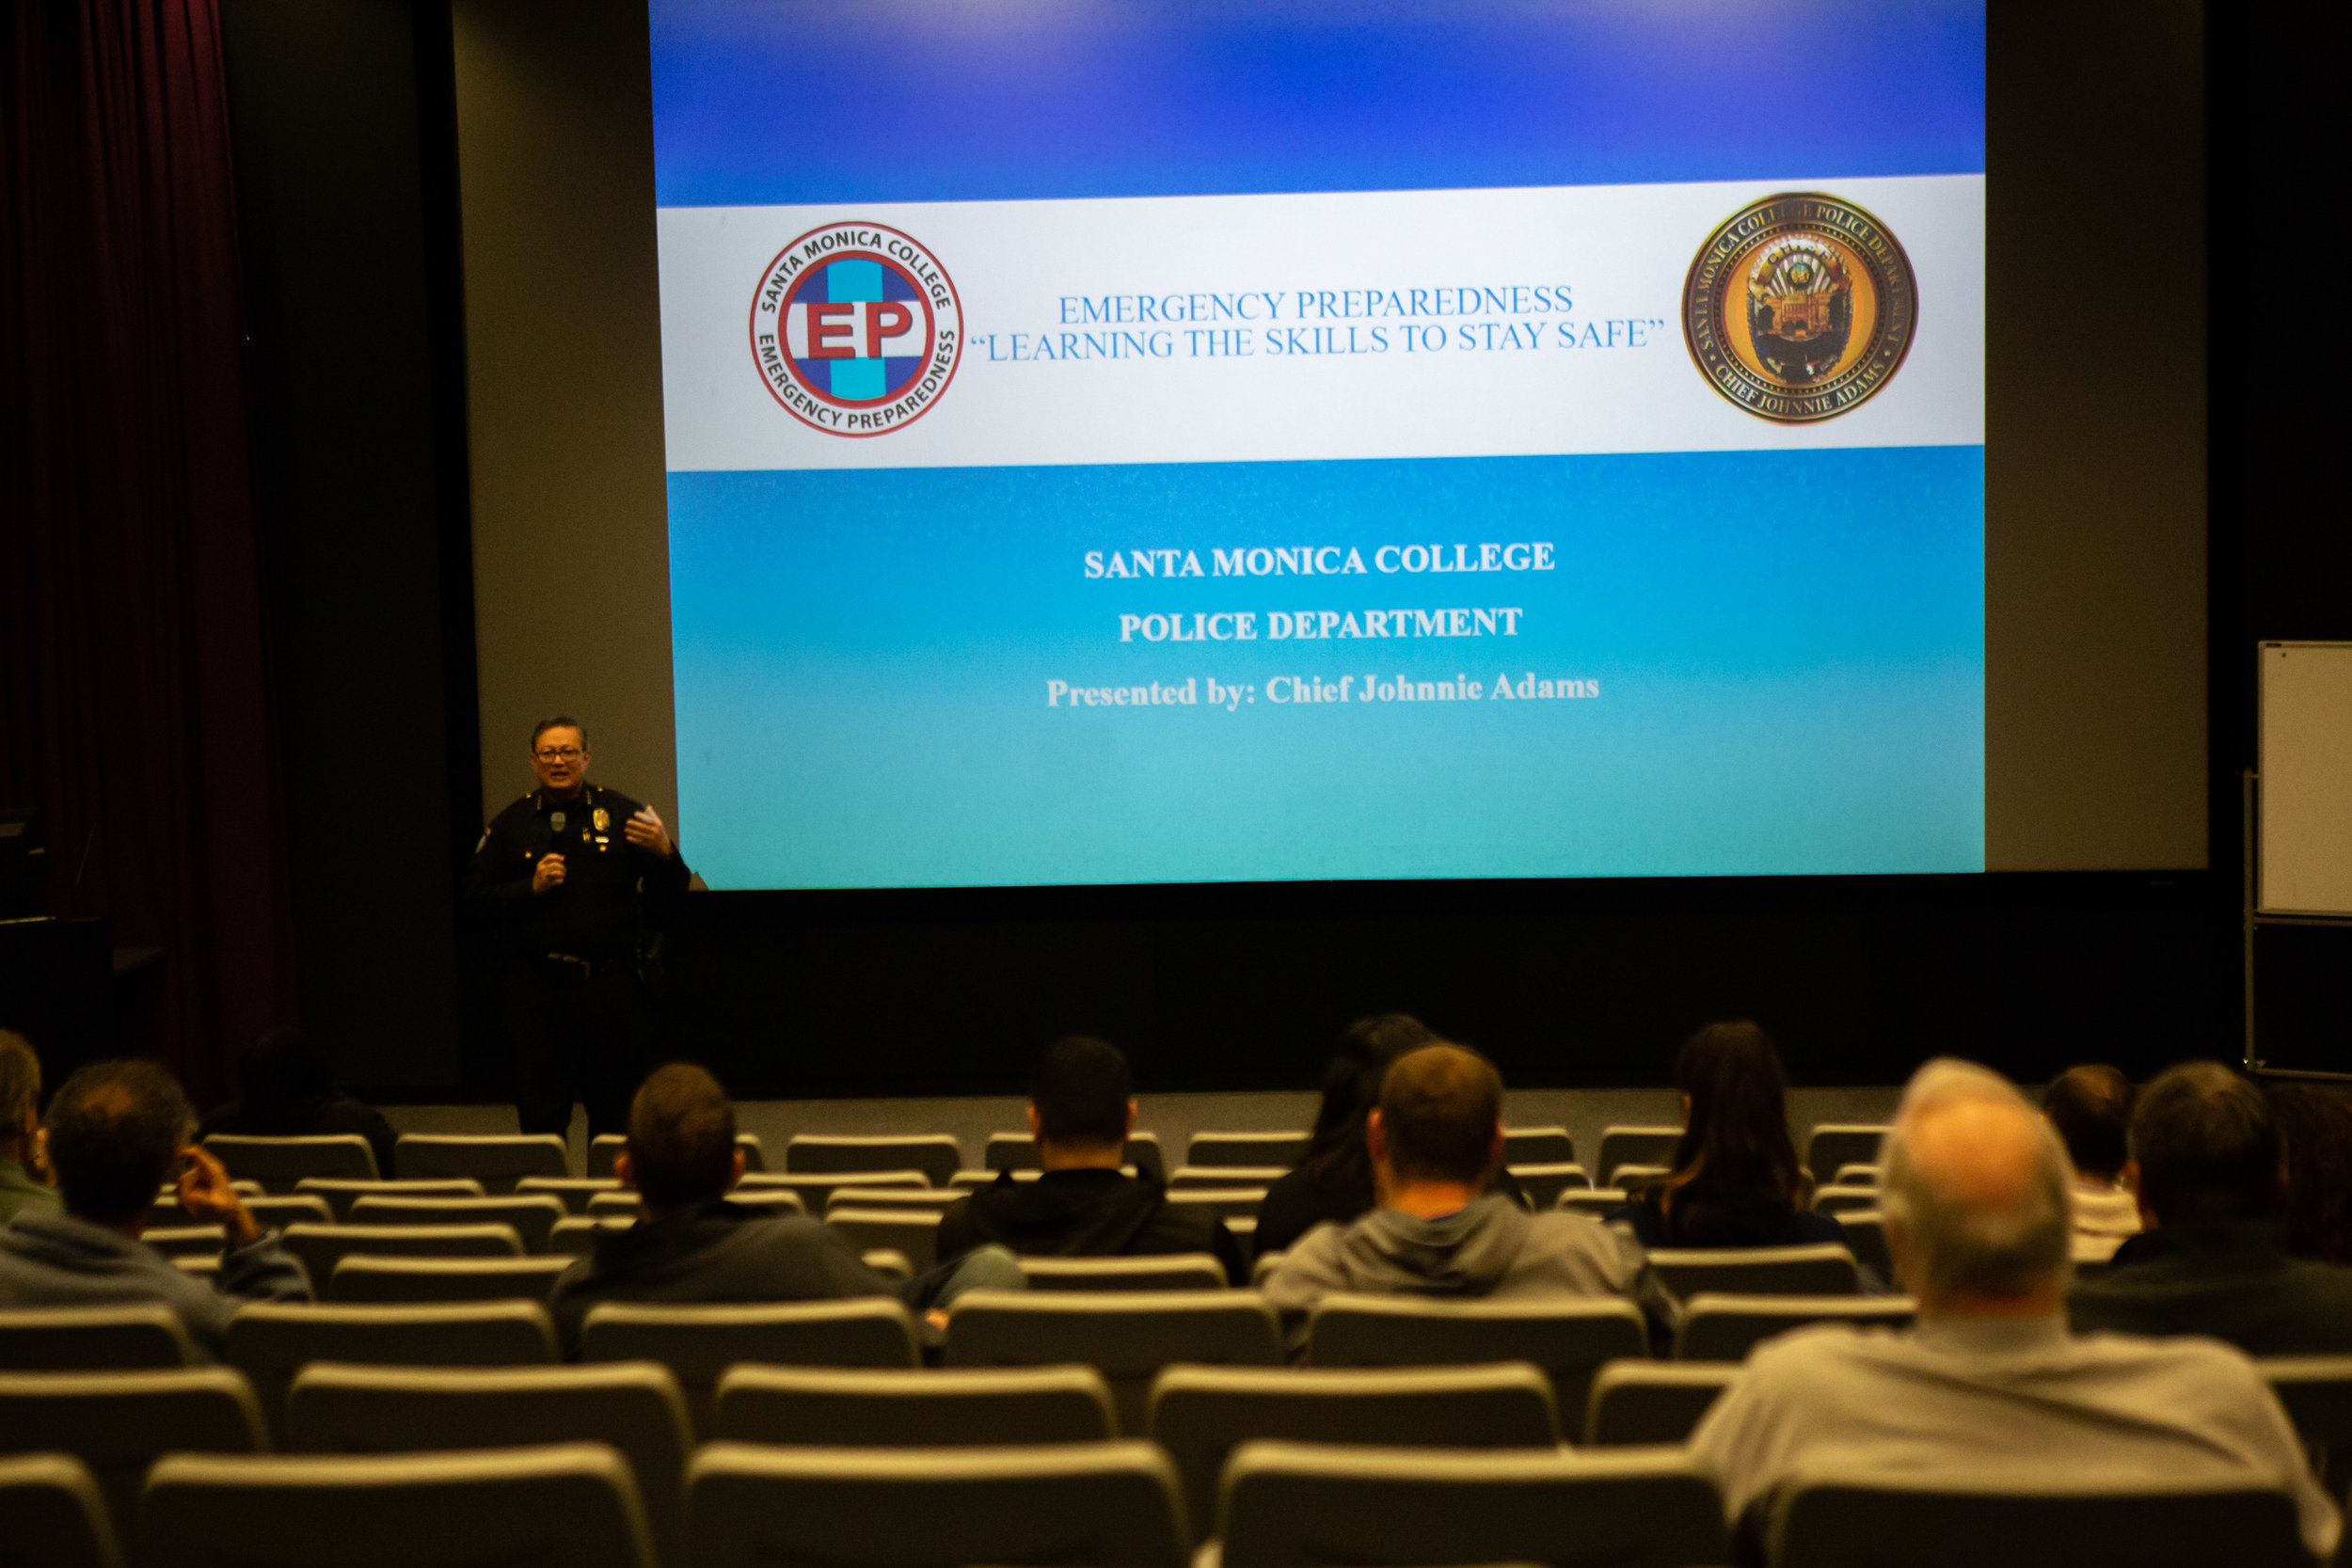 Johnnie Adams, Chief of Police at Santa Monica Community College District explaining the drill protocols to faculties, students and volunteers on Friday, March 1, 2019. AT the Center for media and Design in Santa Monica, Calif.